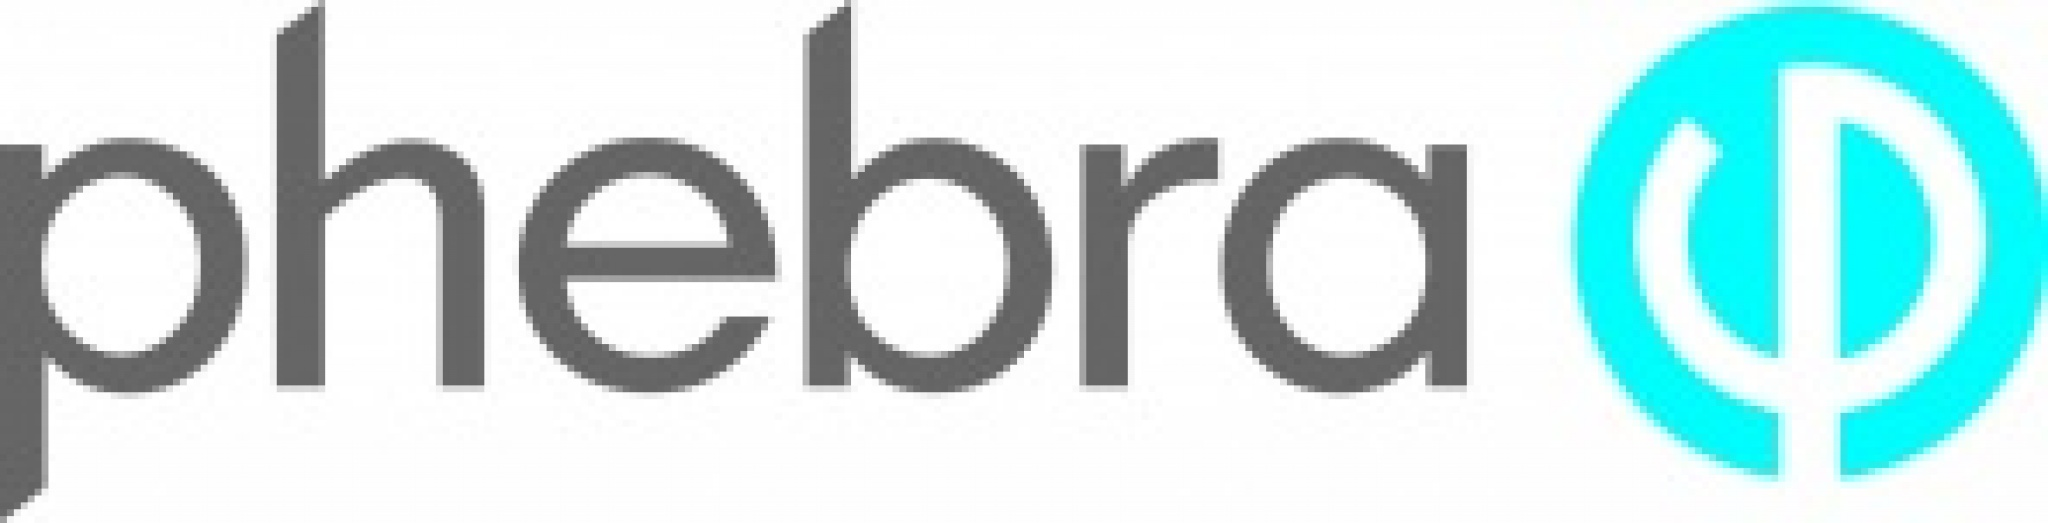 https://www.amomed.com/wp-content/uploads/2017/11/Phebra-logo-colour_HiRes-1-e1515077248525-2048x523.jpg